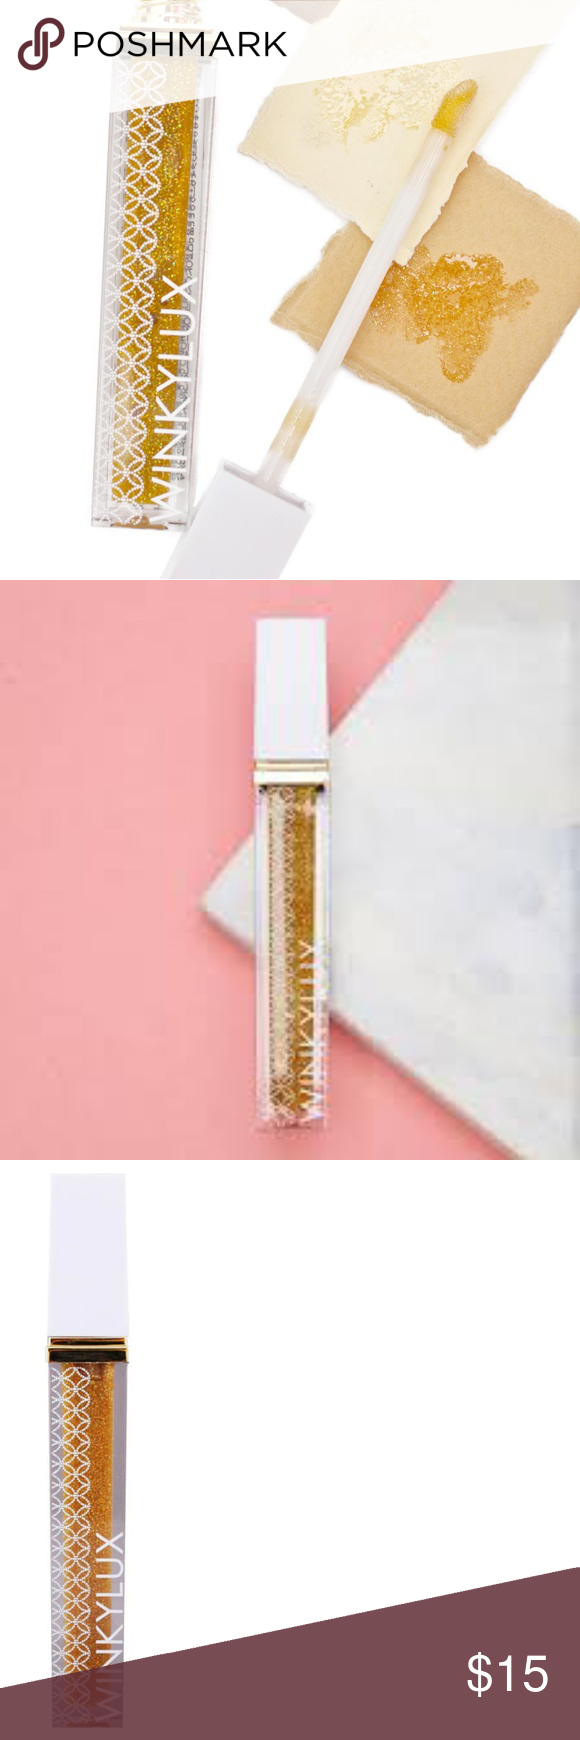 Winky Lux Champagne Fight Glossy Boss NWT Winky Lux